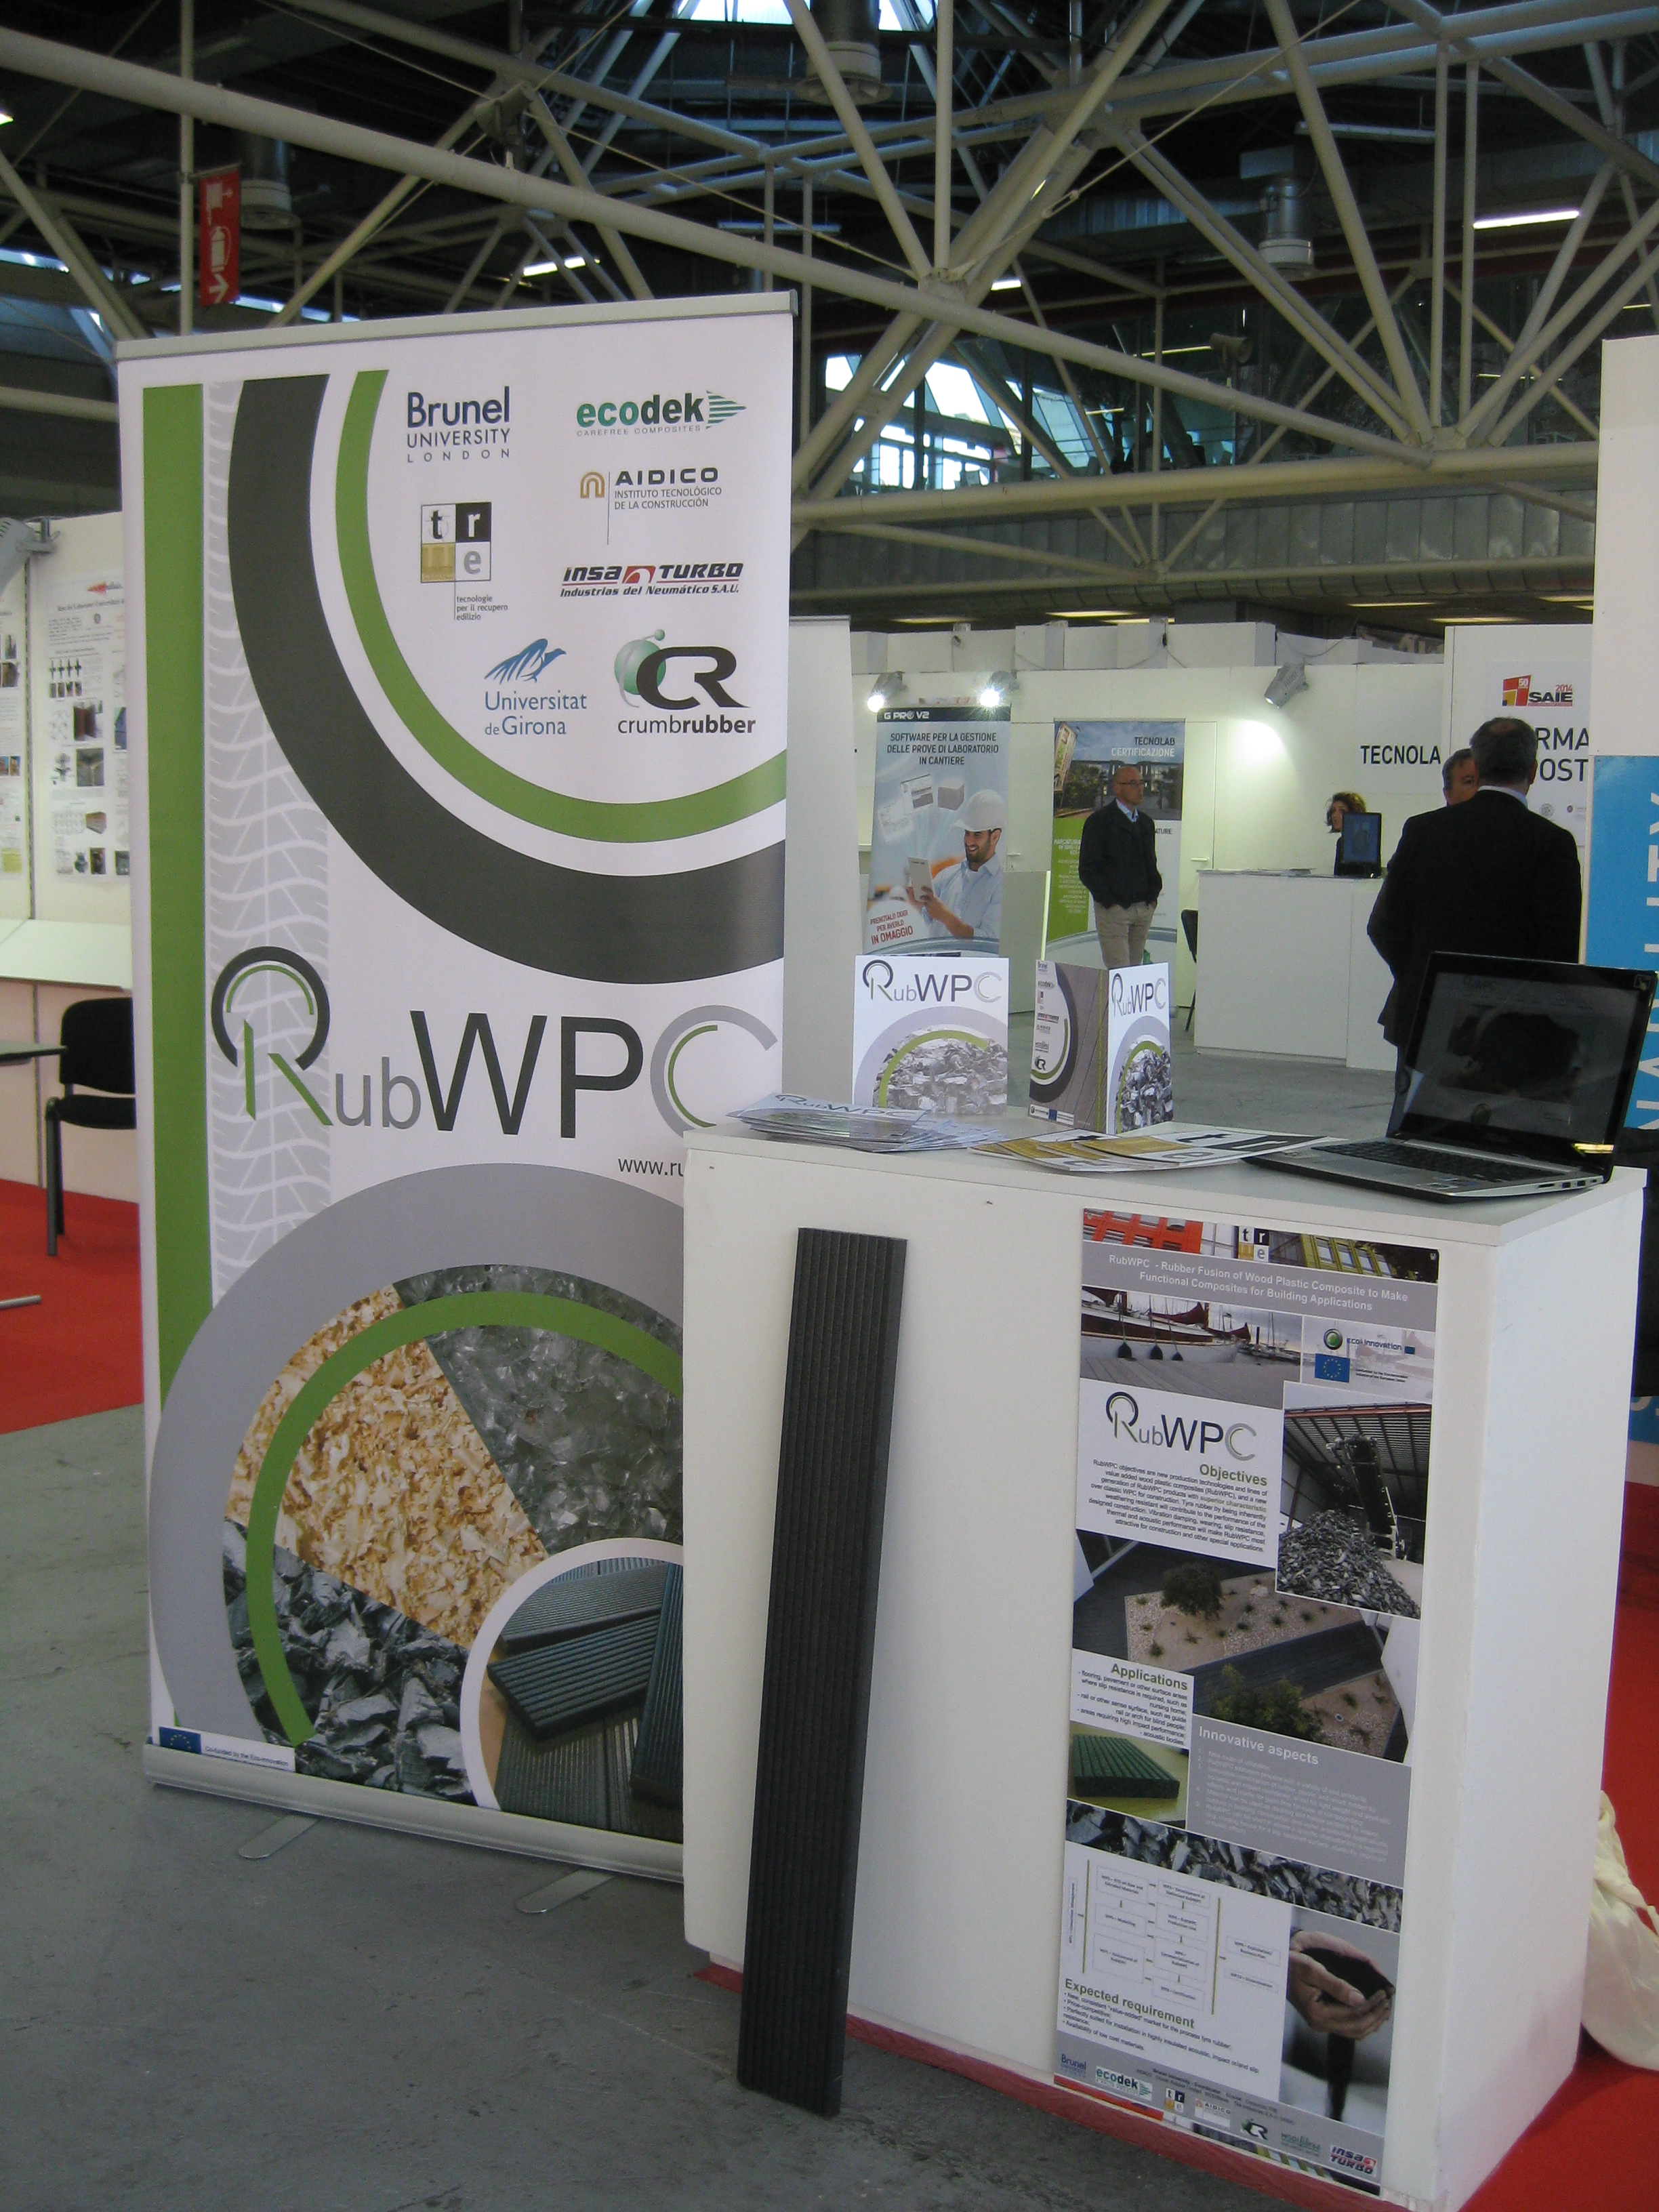 RubWPC at SAIE 2014 in Bologna, Italy